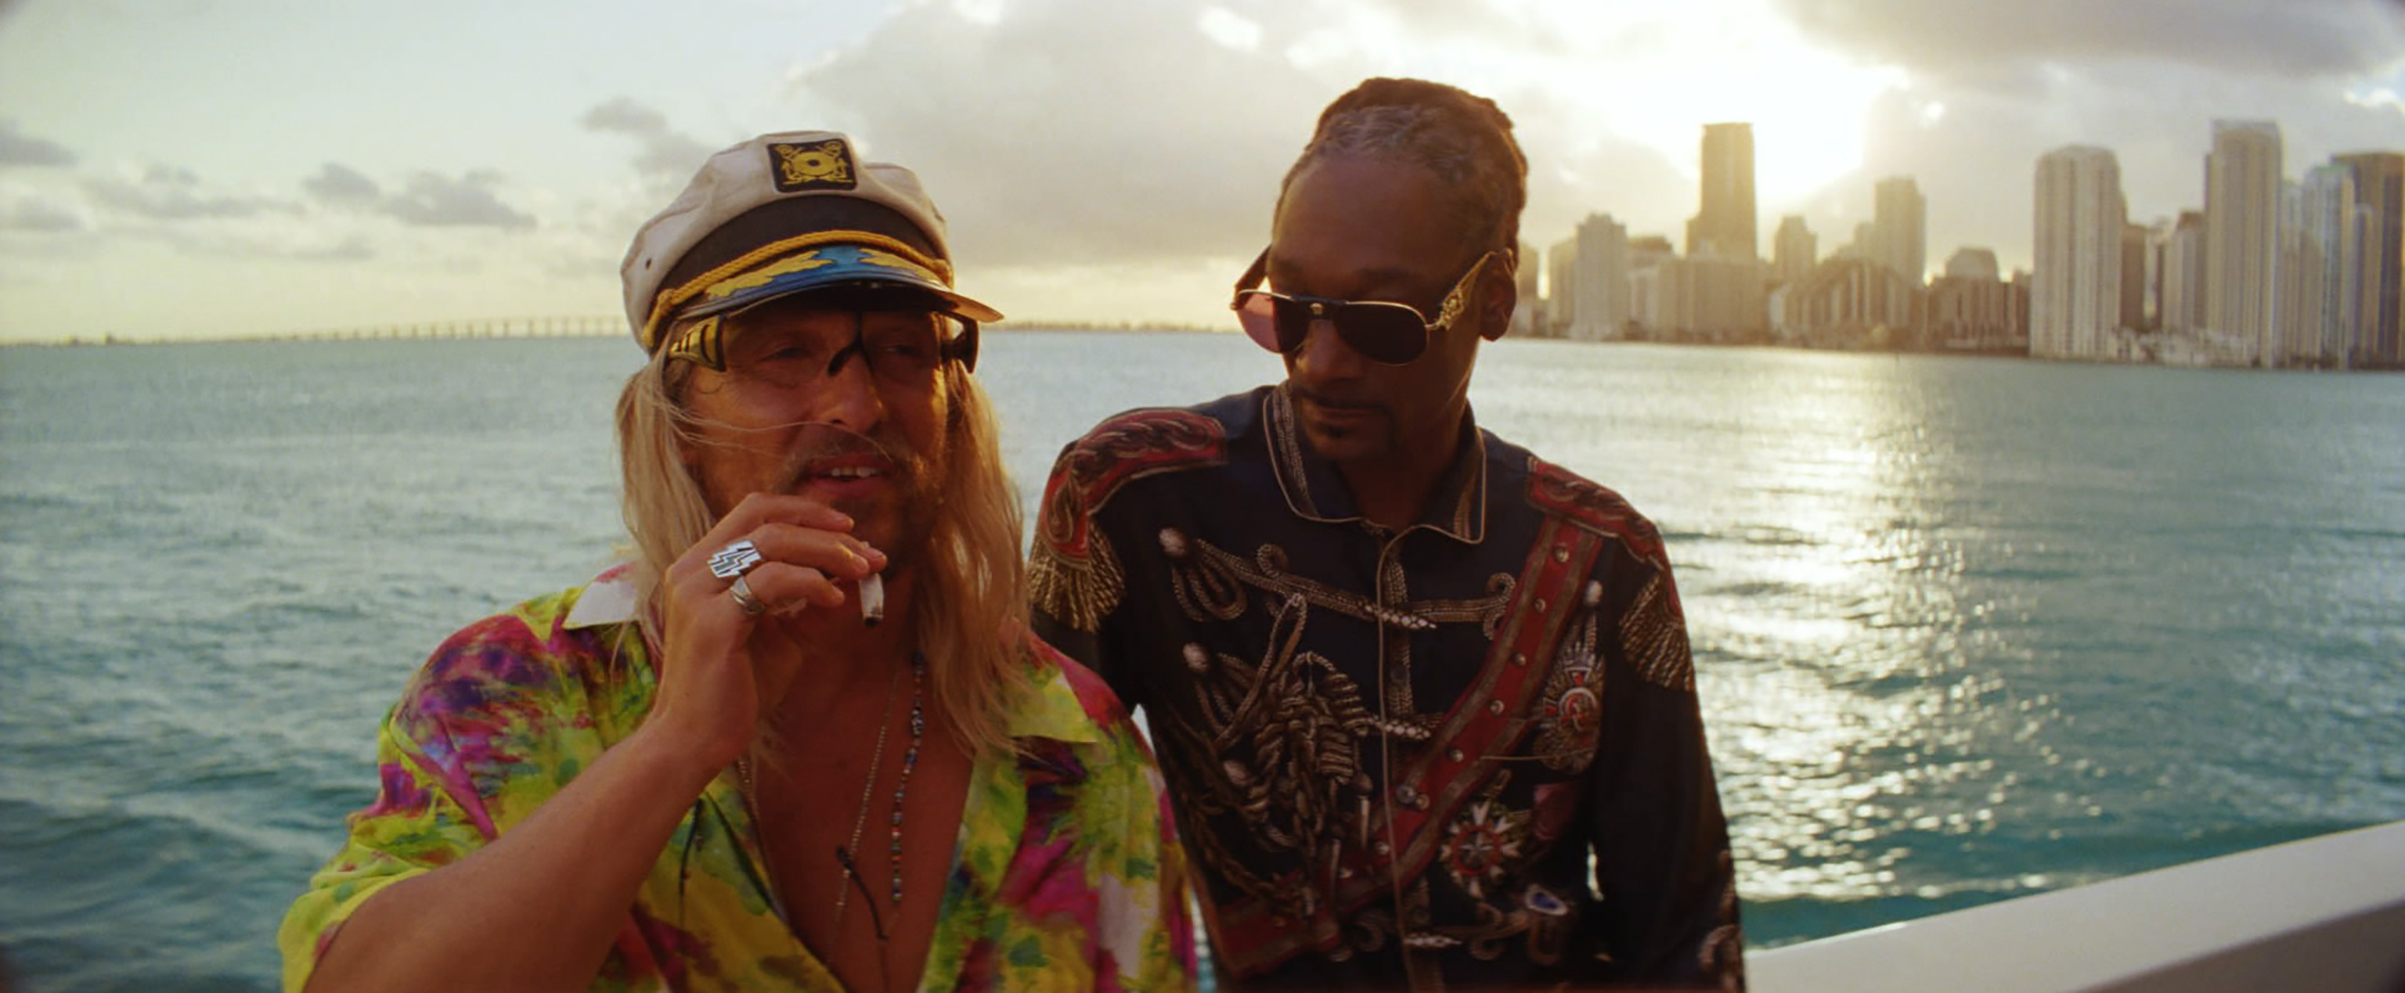 McConaughey mugs with rapper friend Lingerie, played by none other than Snoop Dogg